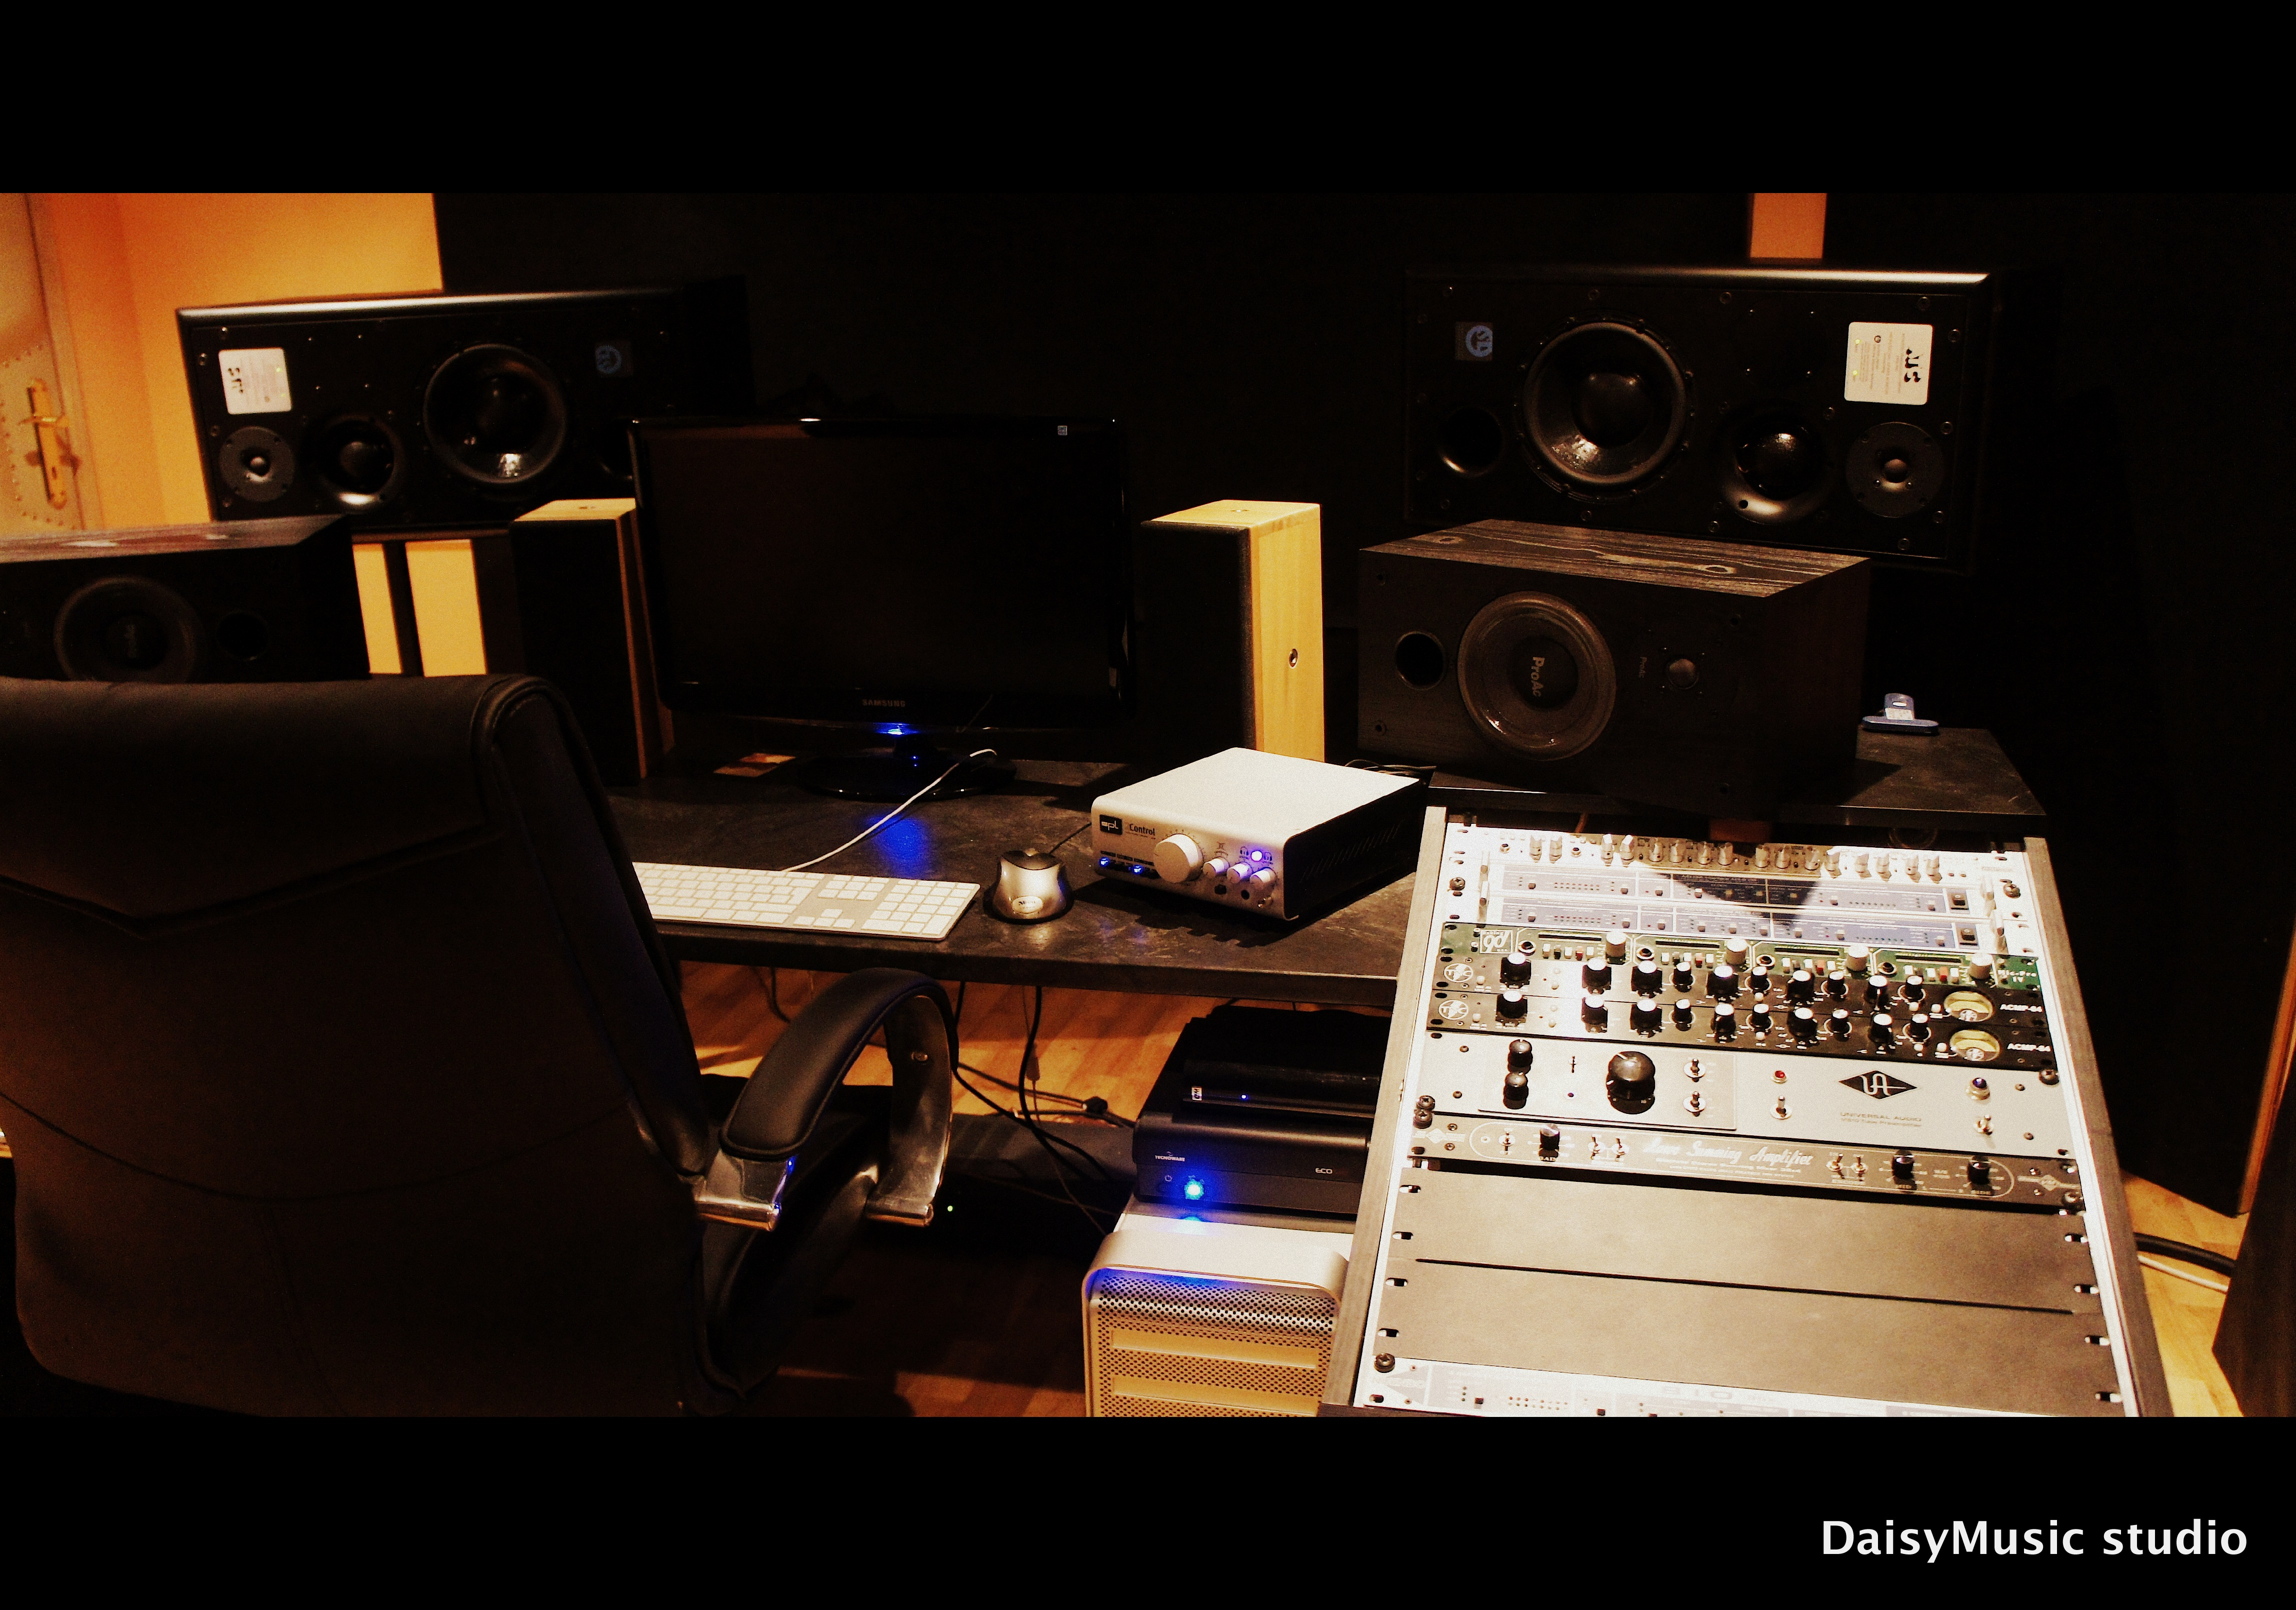 DaisyMusic glasbeni studio